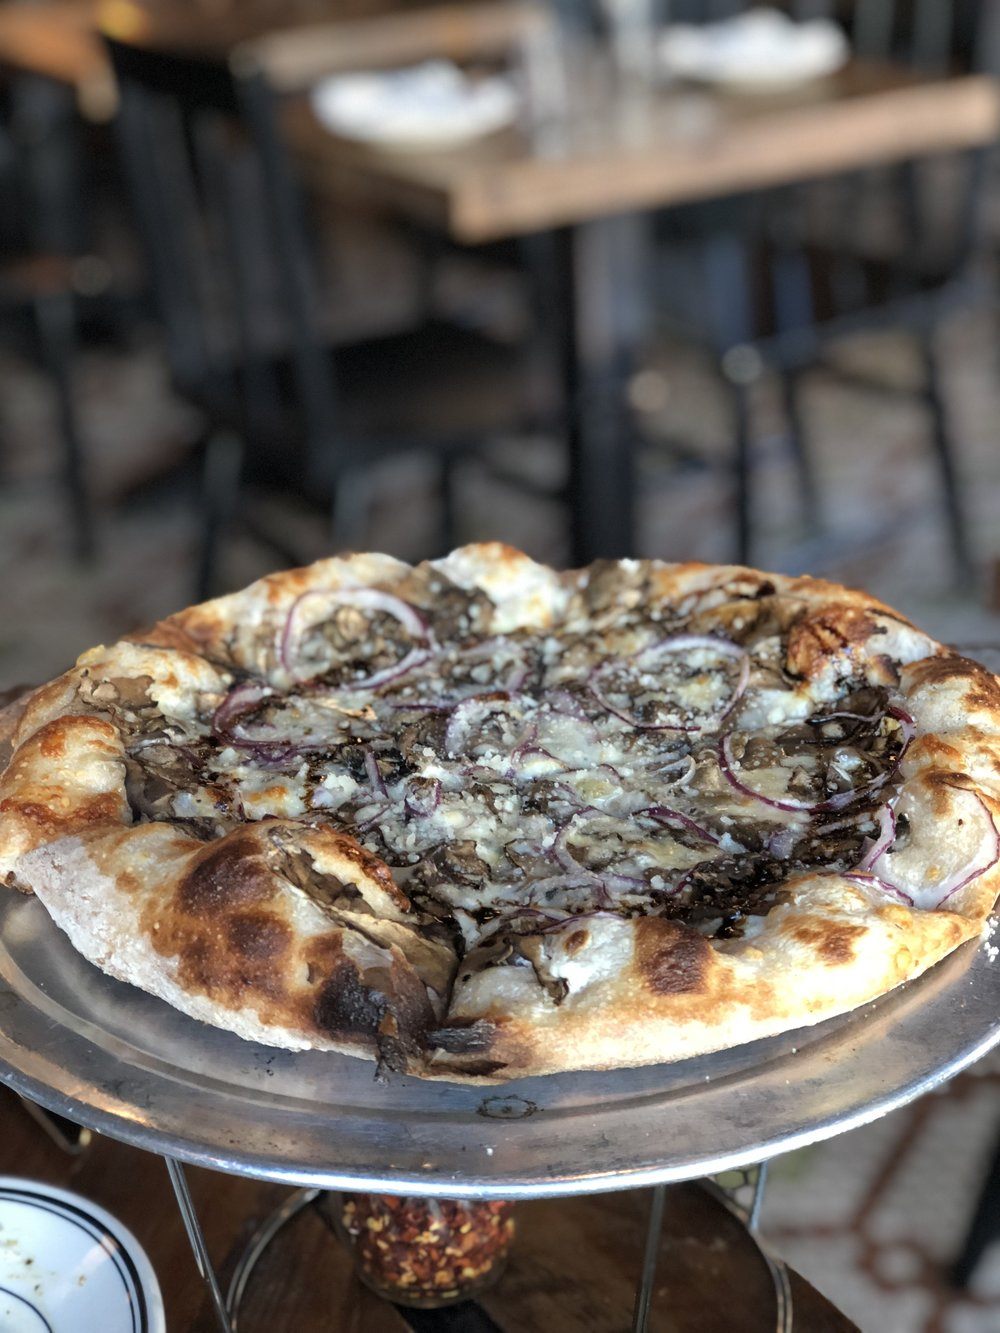 Pizza with roasted mushrooms, smoked mozzarella, caramelized onion, gorgonzola and balsamic